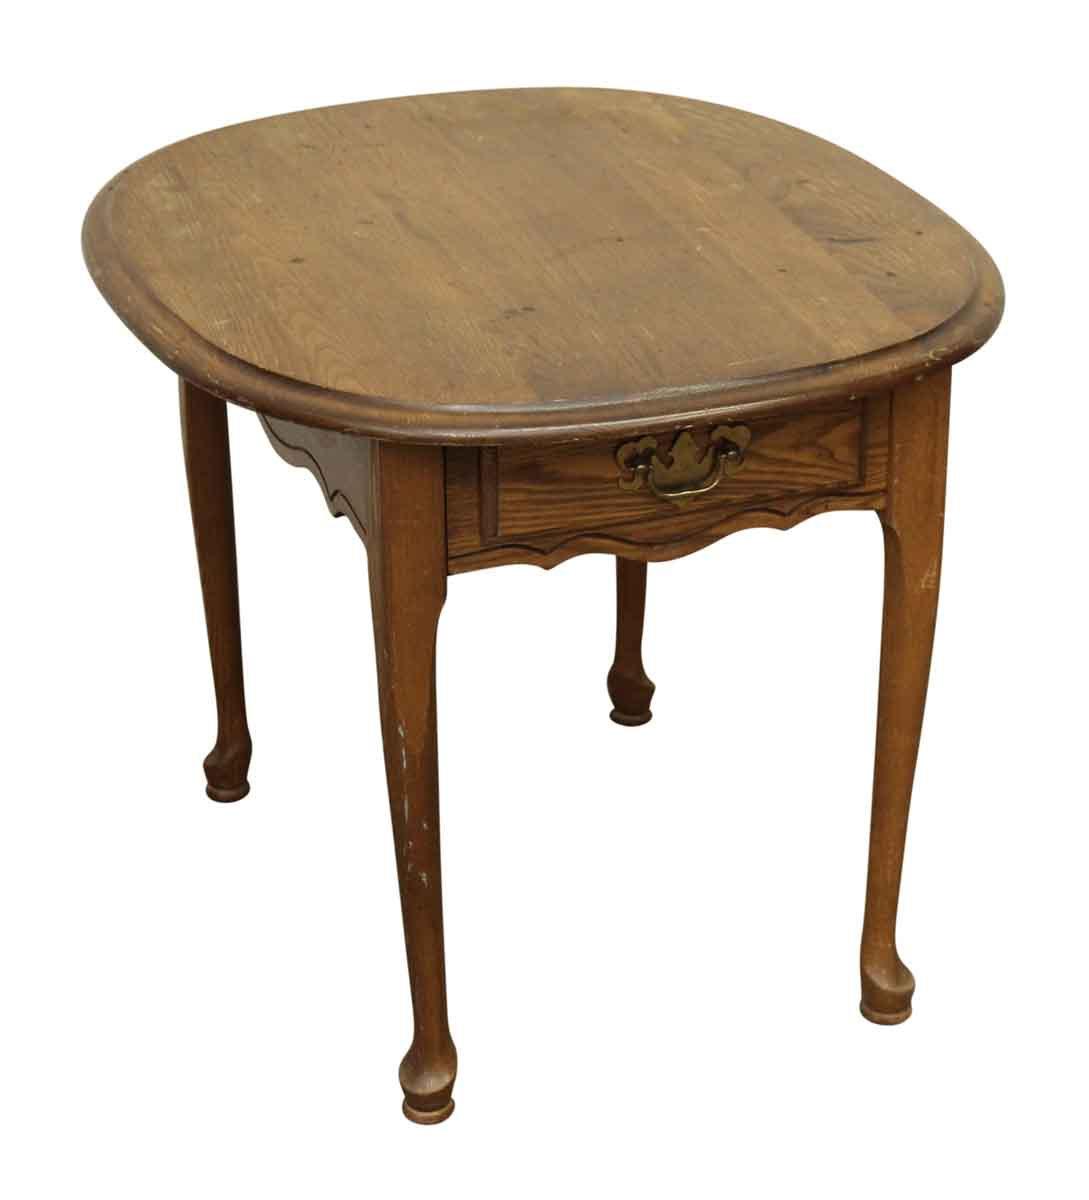 Wooden Side Tables For Living Room: Wooden Oval Side Table